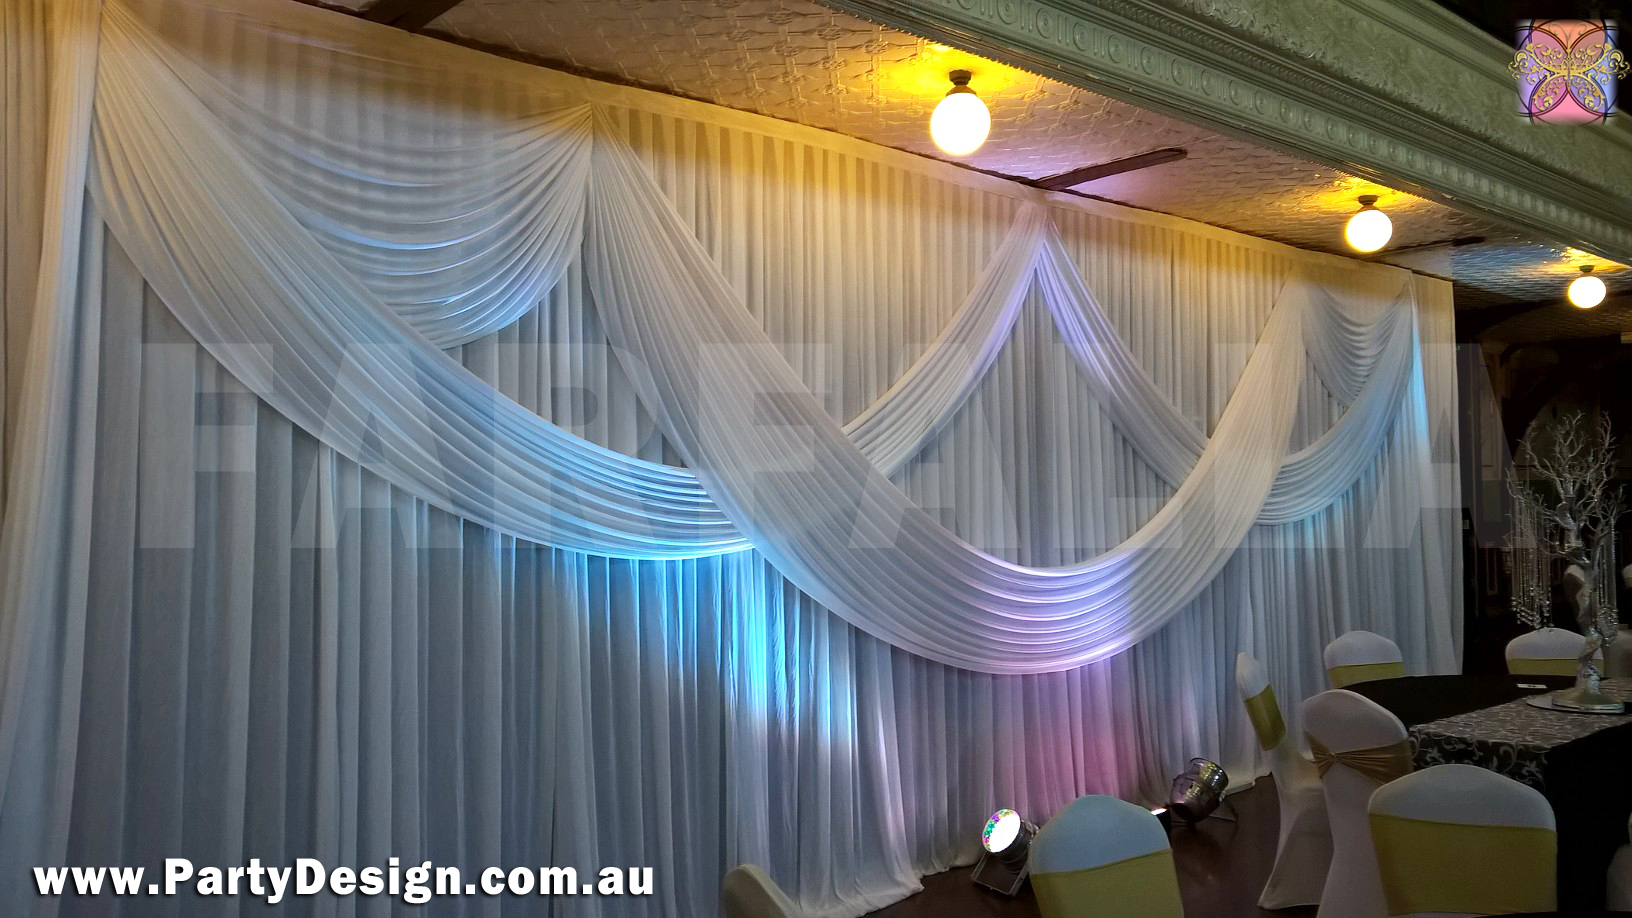 Flower Walls Melbourne Wedding Backdrops And Flower Wall Melbourne Affordable